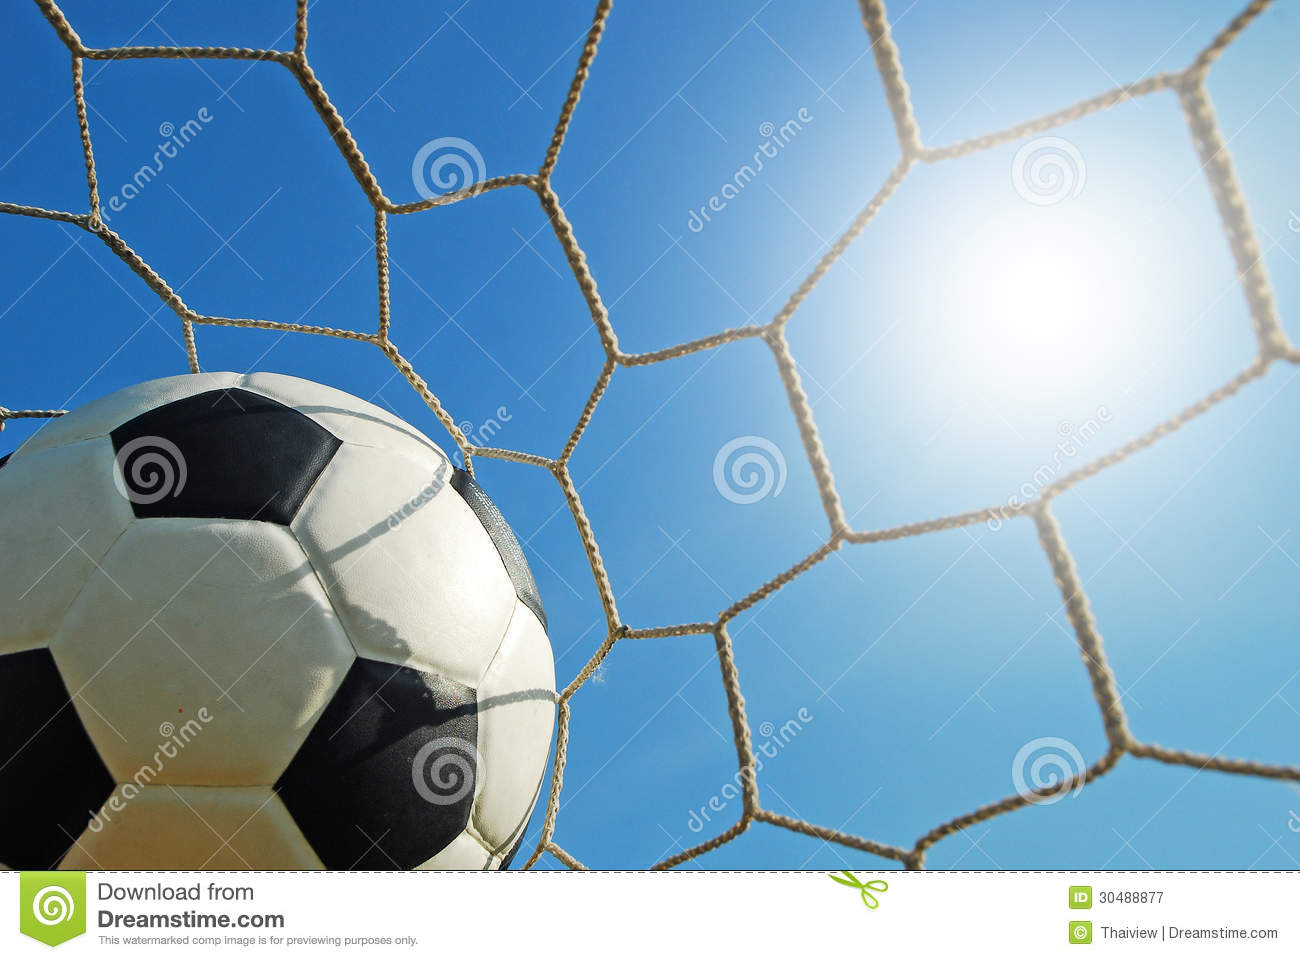 Soccer Football On Green Field With Blue Sky Background: Football Field Soccer Royalty Free Stock Photography